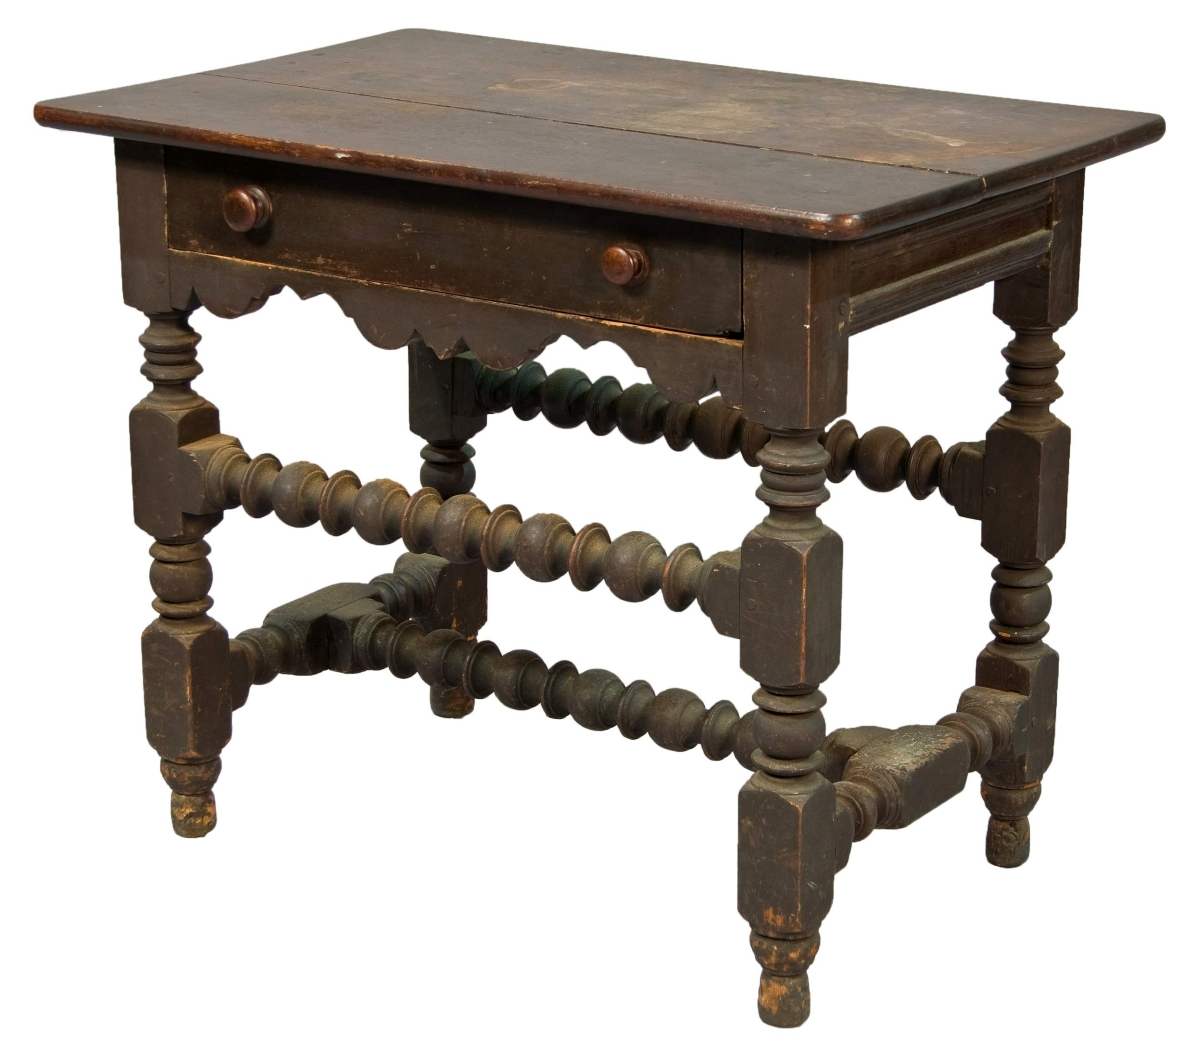 Moisan Early American hi-lo stretcher table